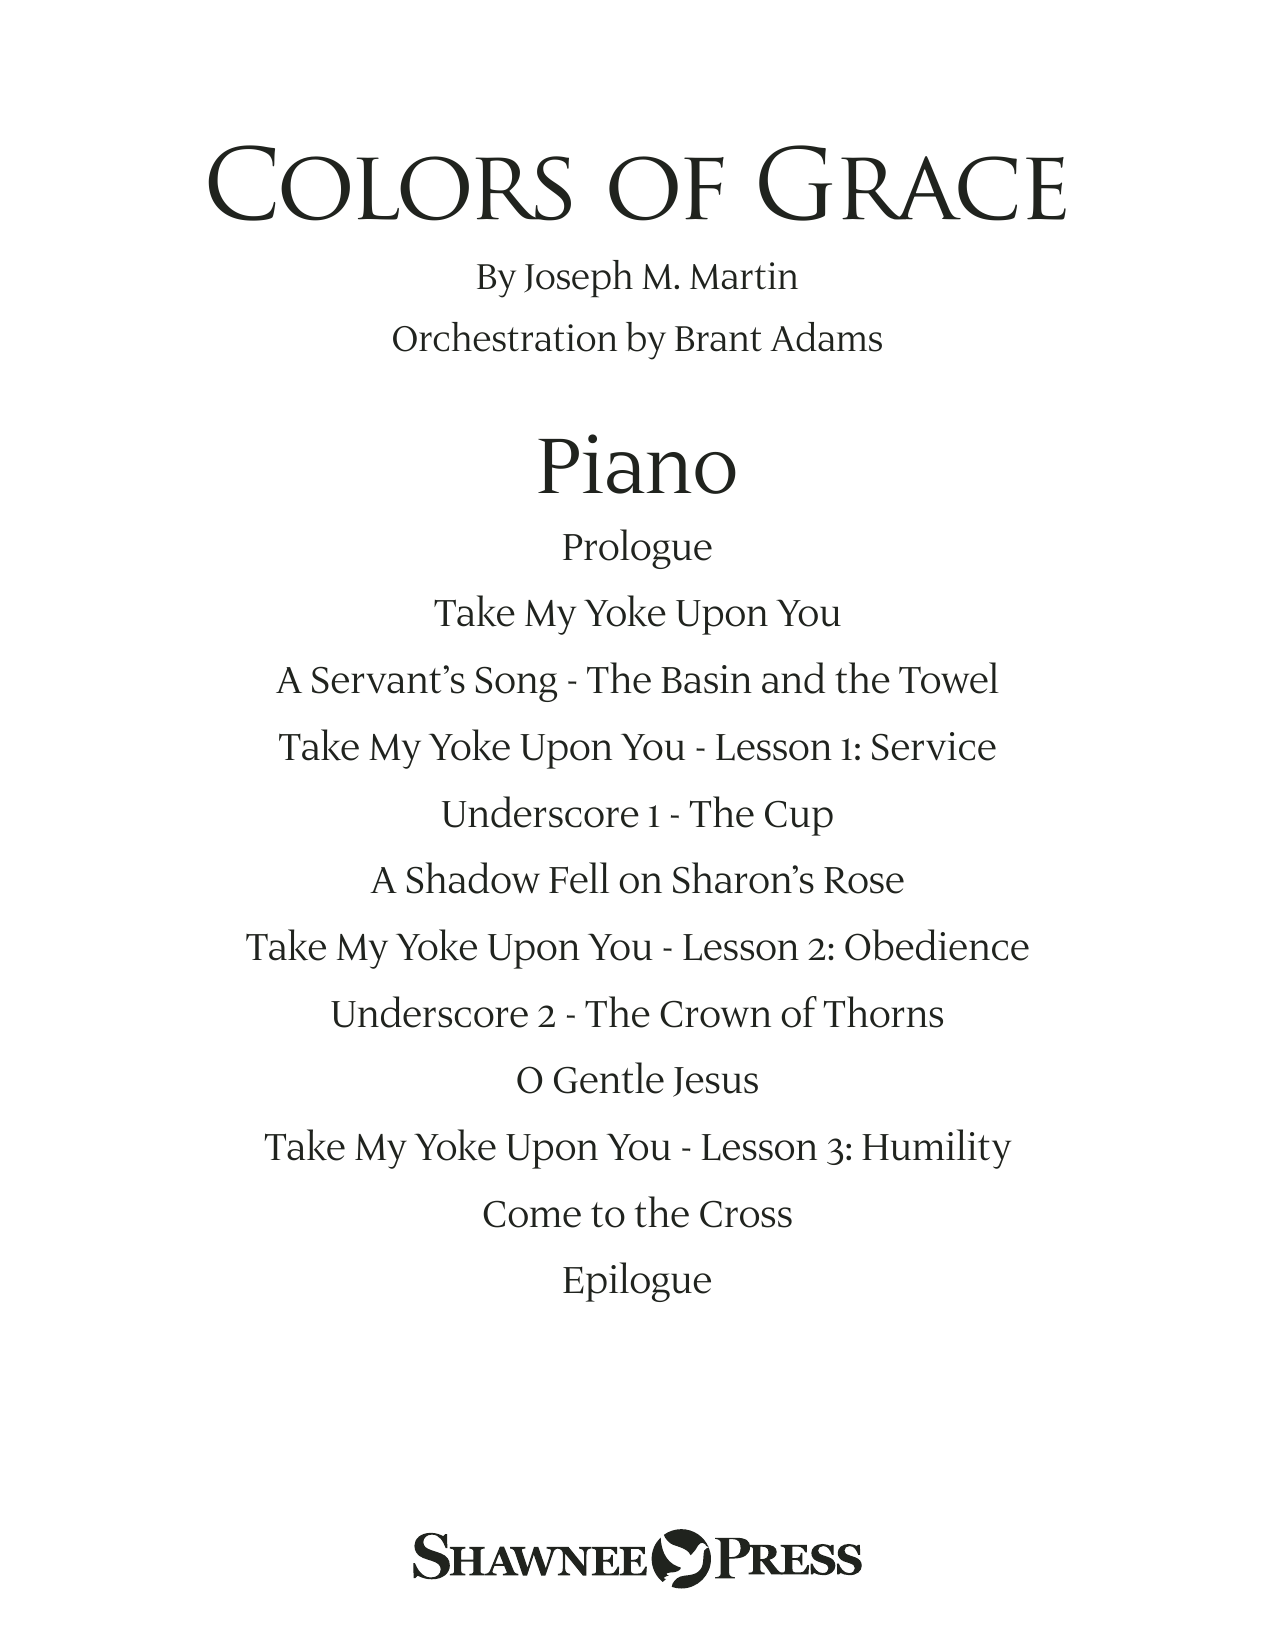 Colors of Grace - Lessons for Lent (New Edition) (Orchestra Accompaniment) - Piano Sheet Music